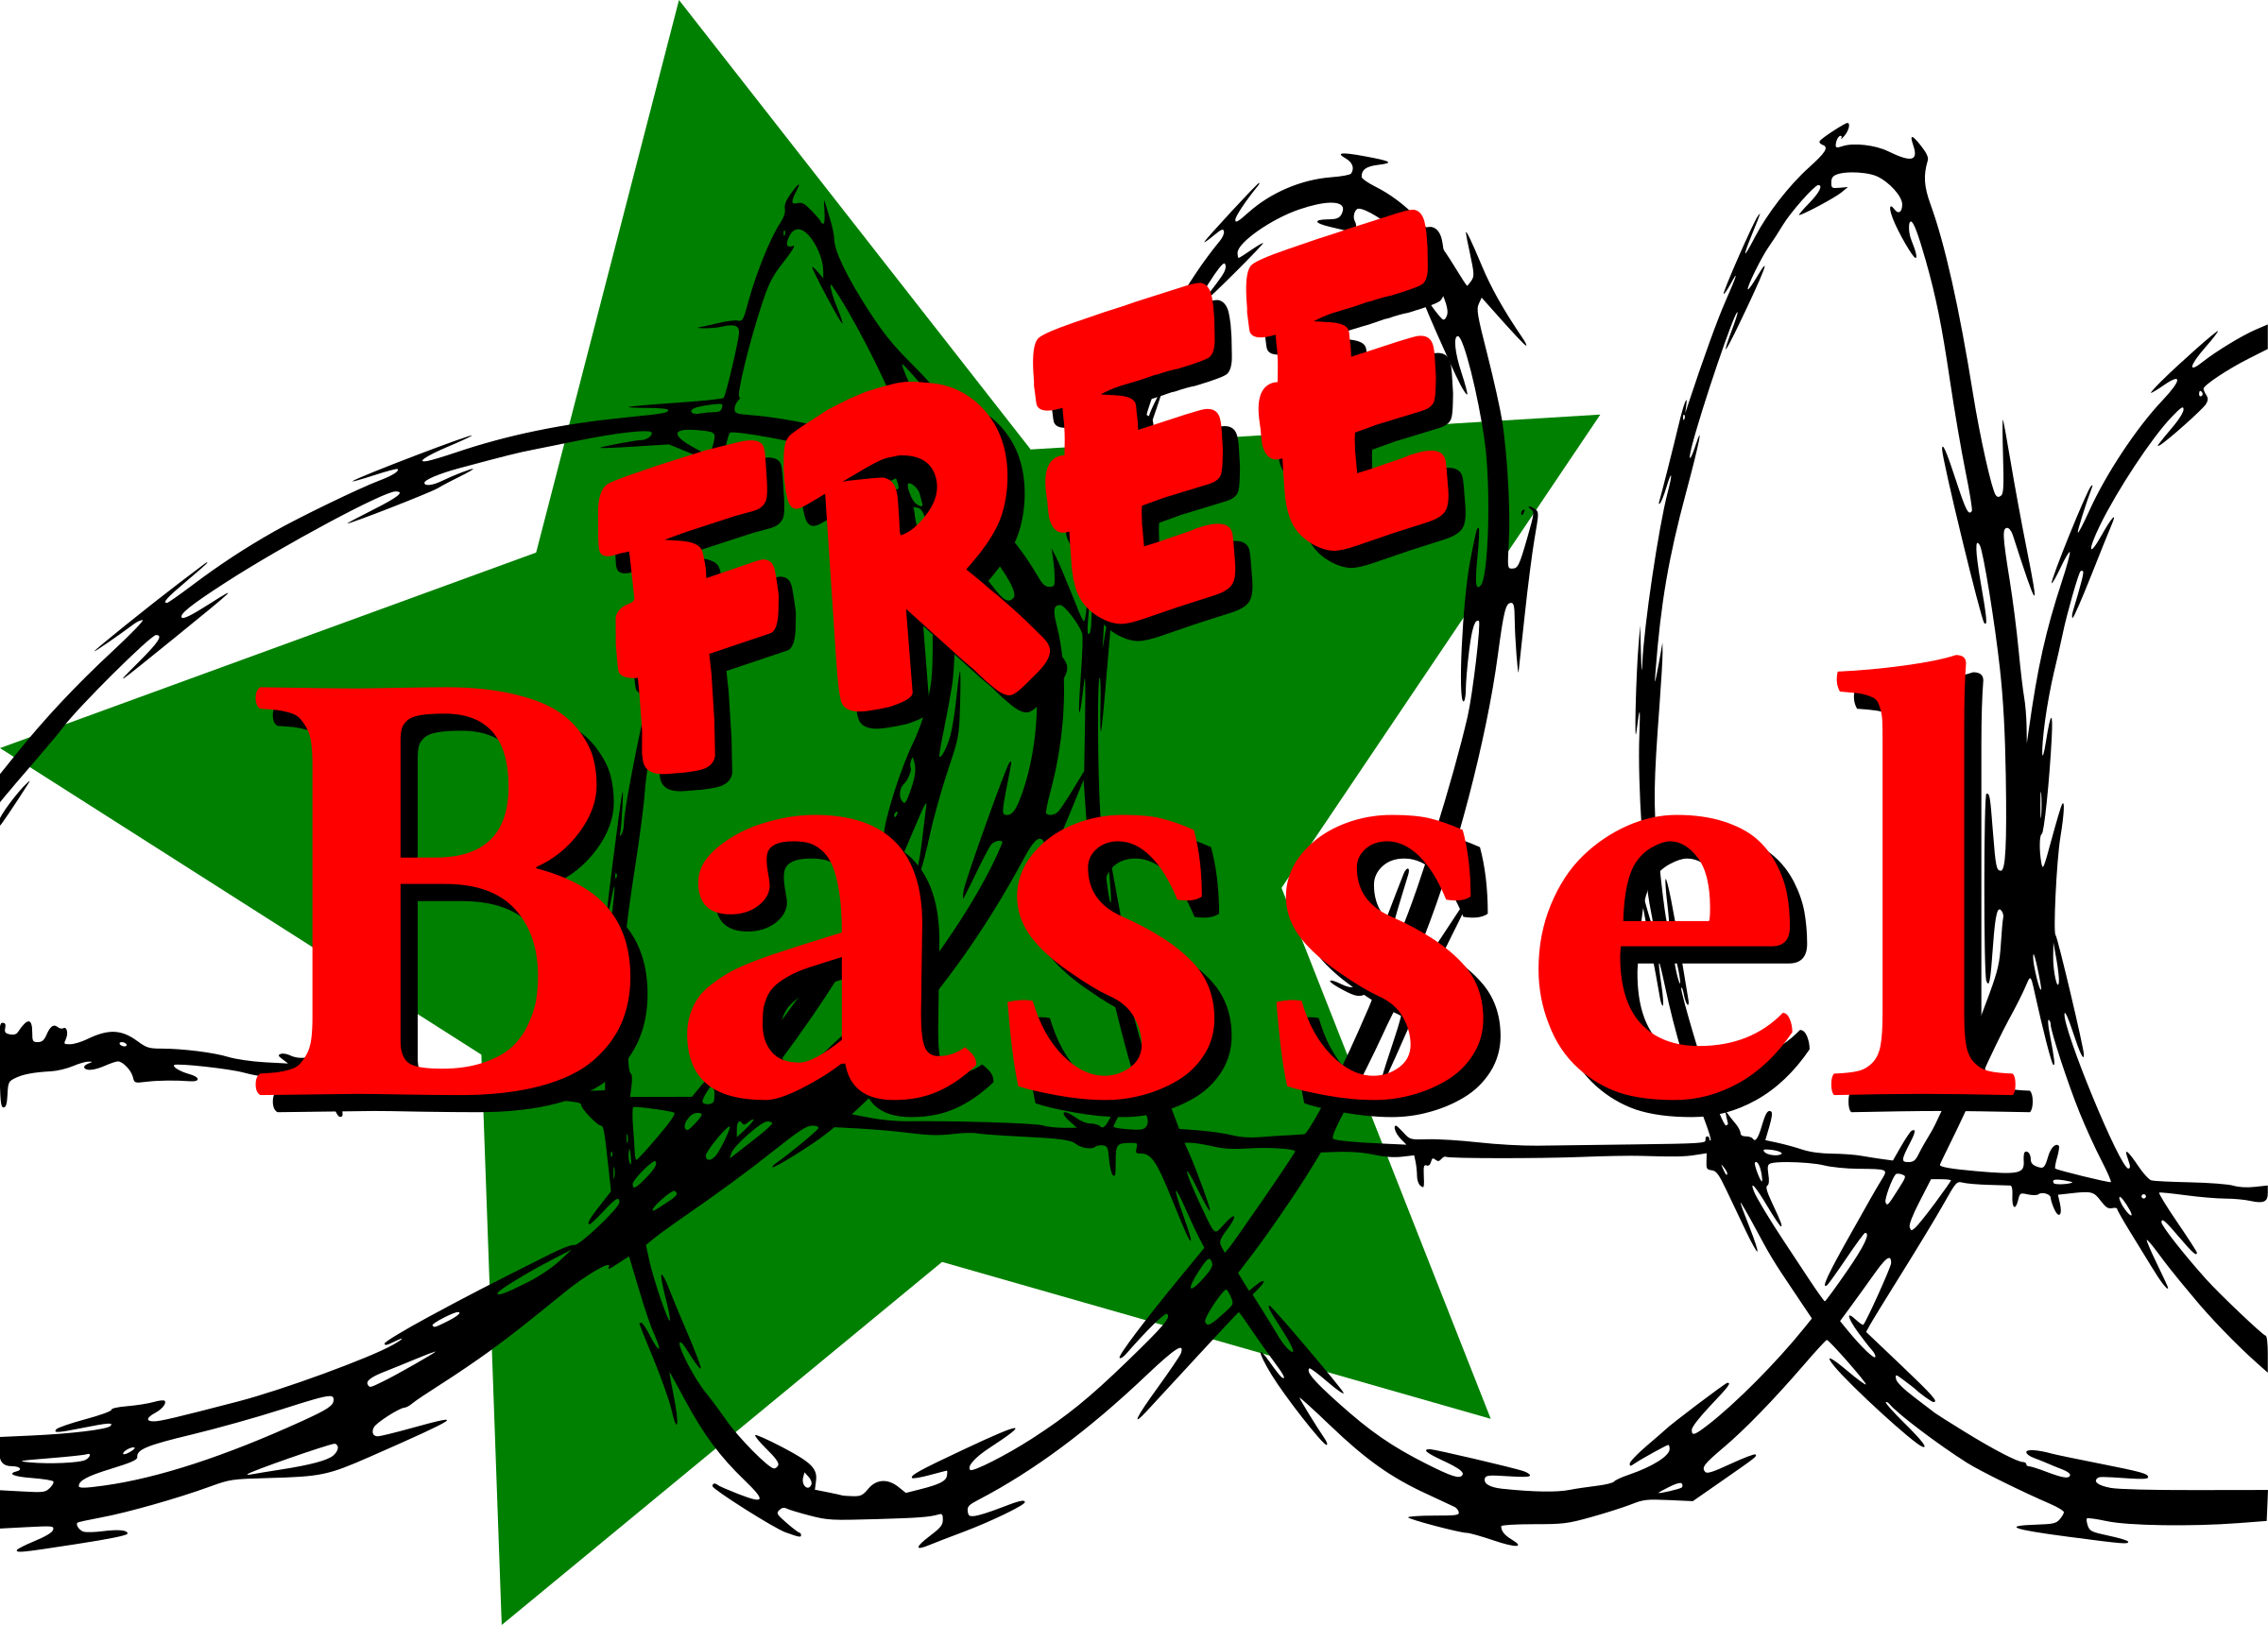 Please Free Bassel by lordoftheloch